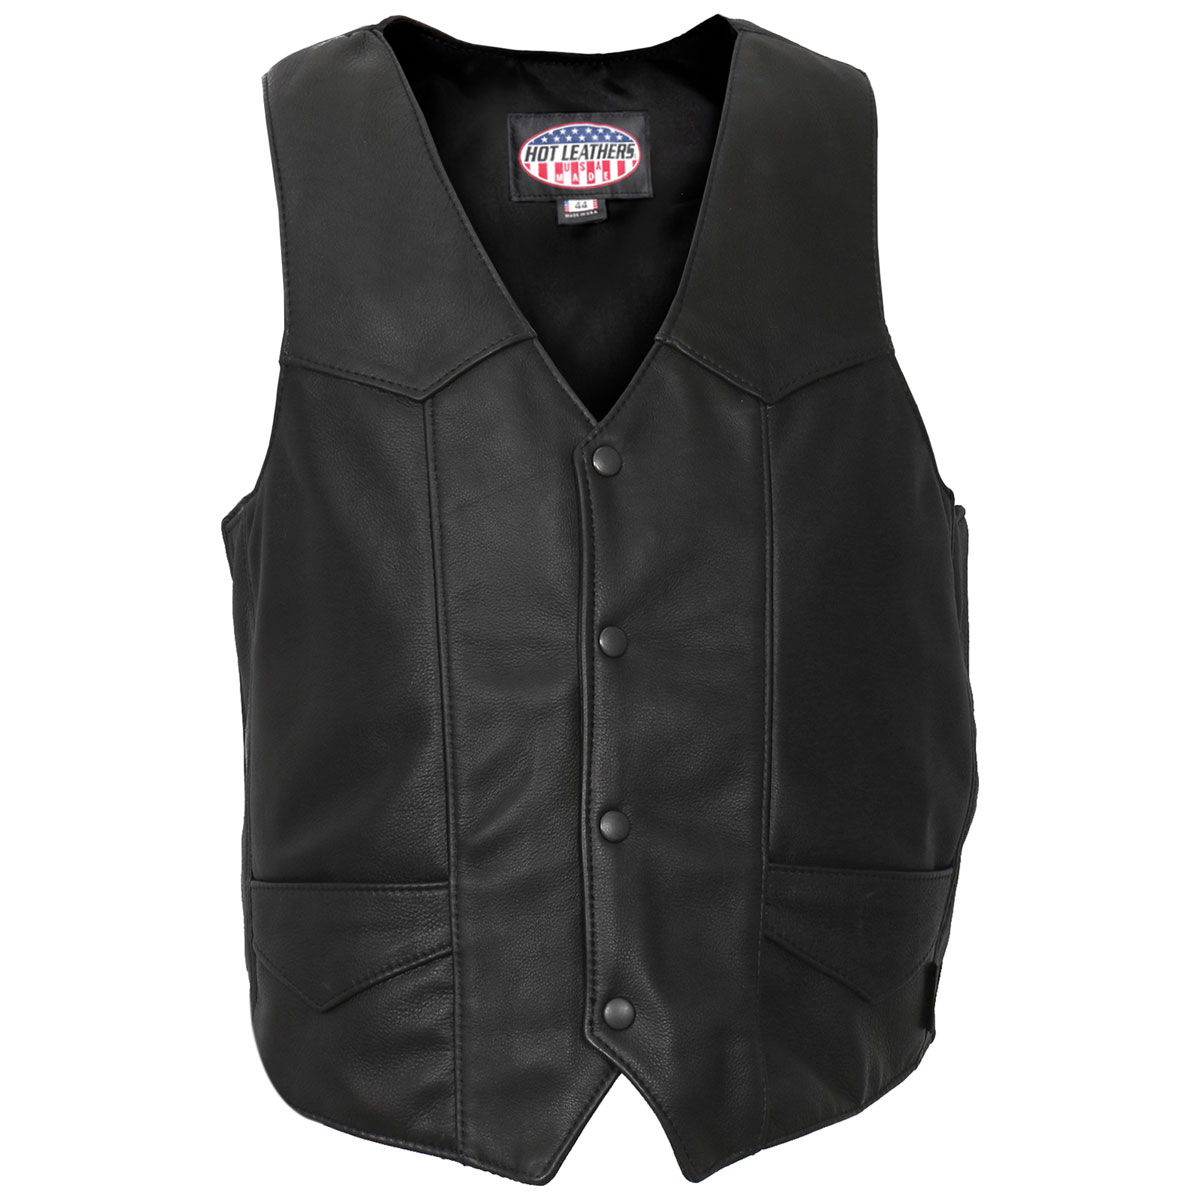 Hot Leathers Men's USA Made Classic Black Leather Vest